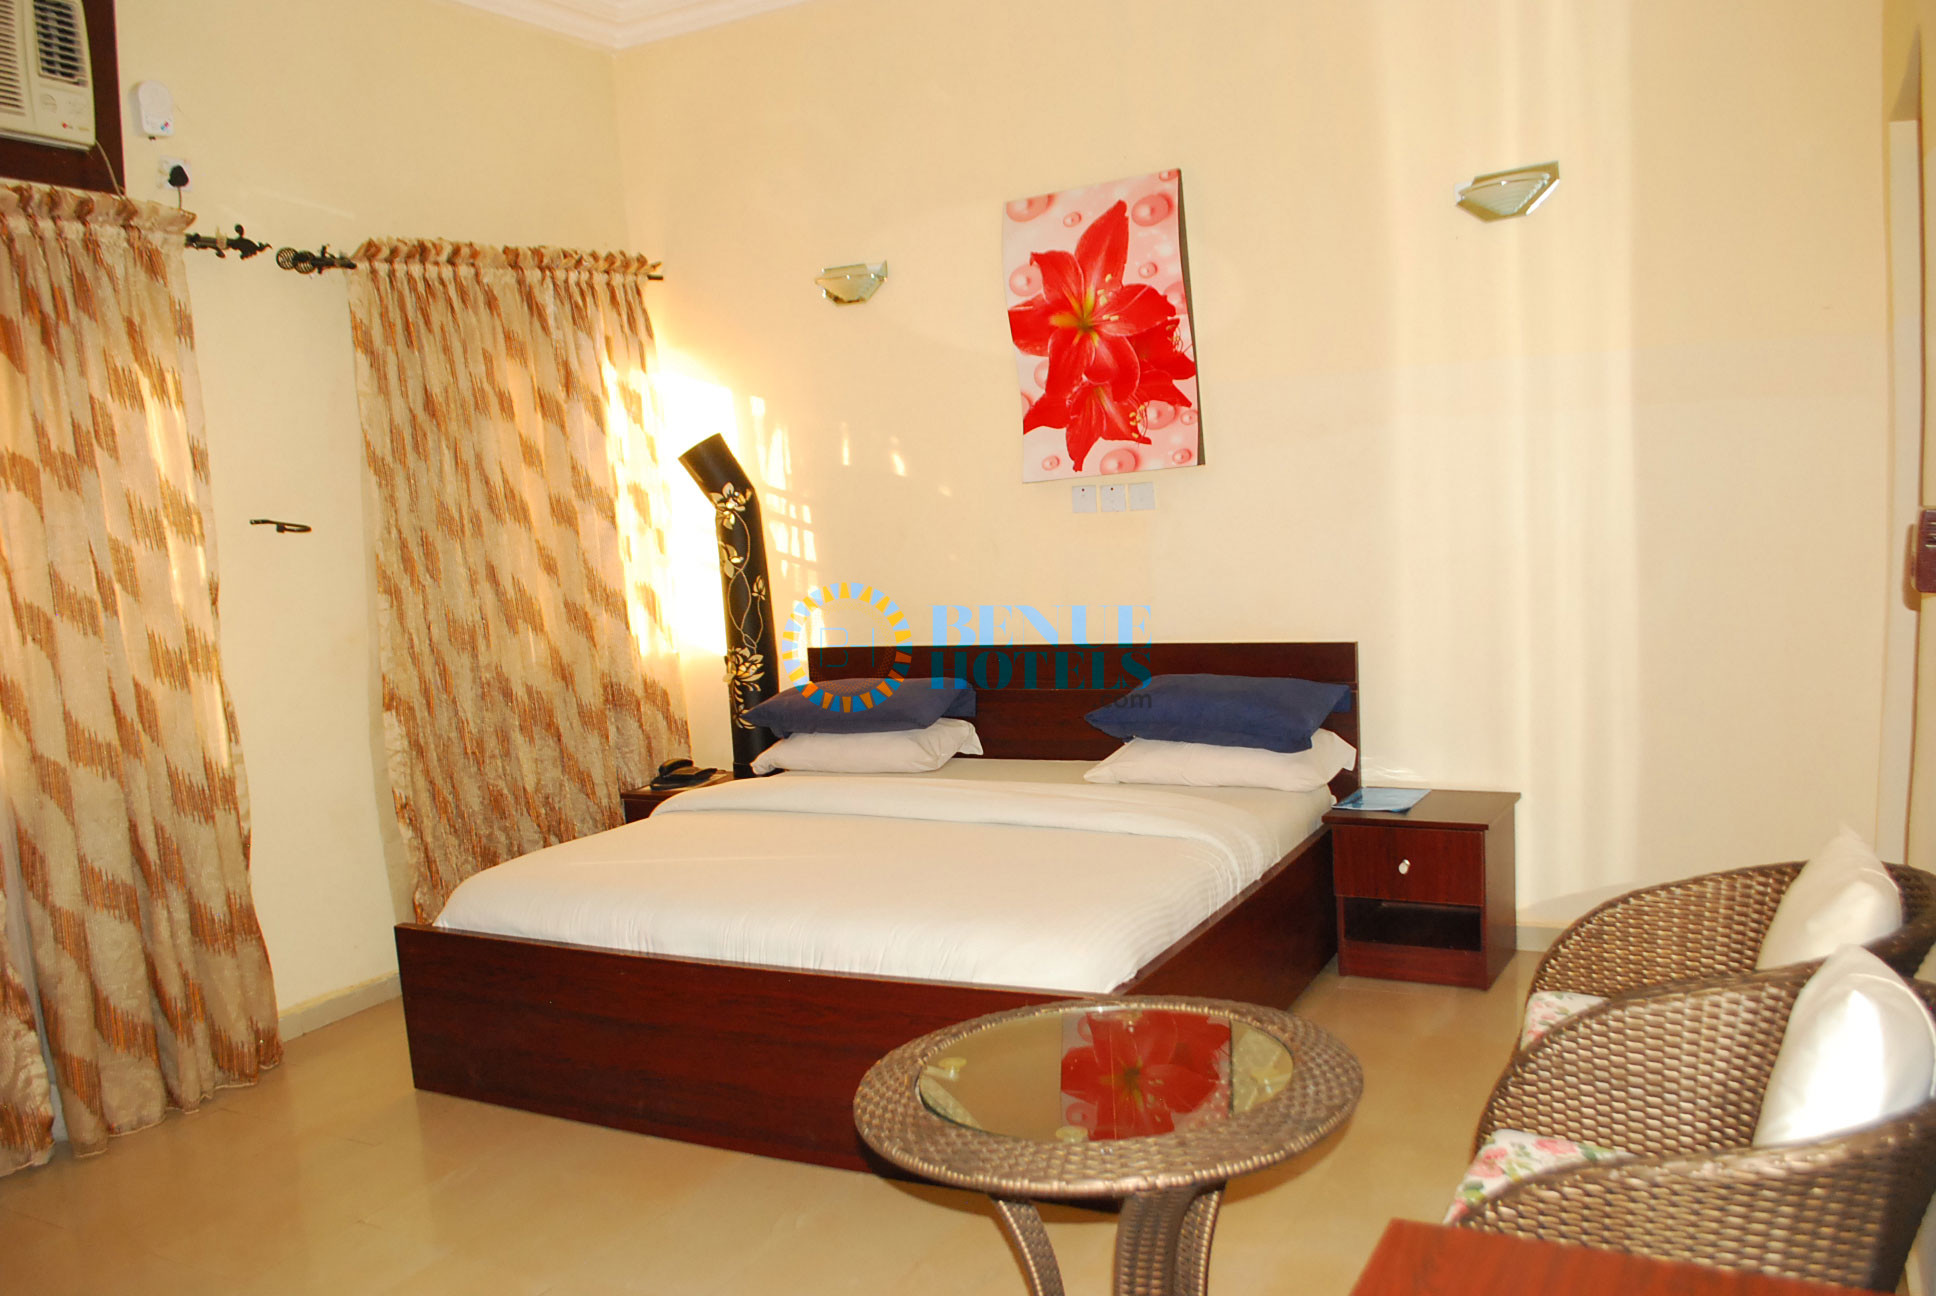 golden suites apa gate hotel, otukpo, benue state